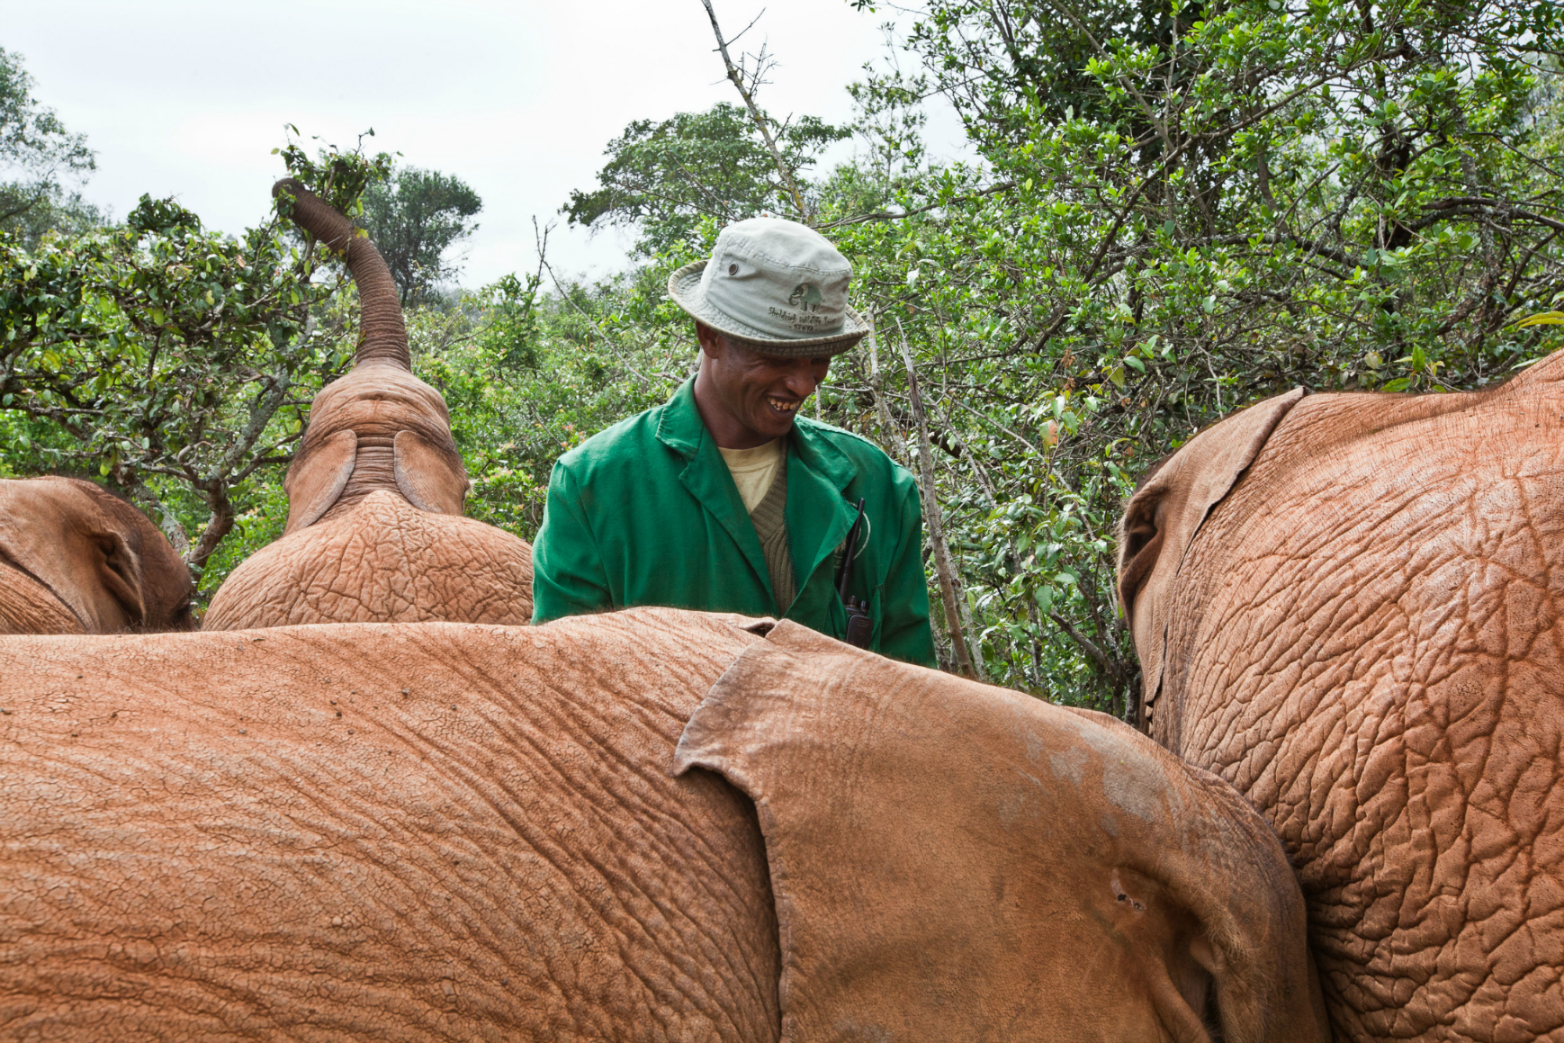 Abdi Kashel, a keeper, with one of the 18 orphaned baby elephants at the David Sheldrick Wildlife Trust in Nairobi National Park. Image:brendanbannon.com